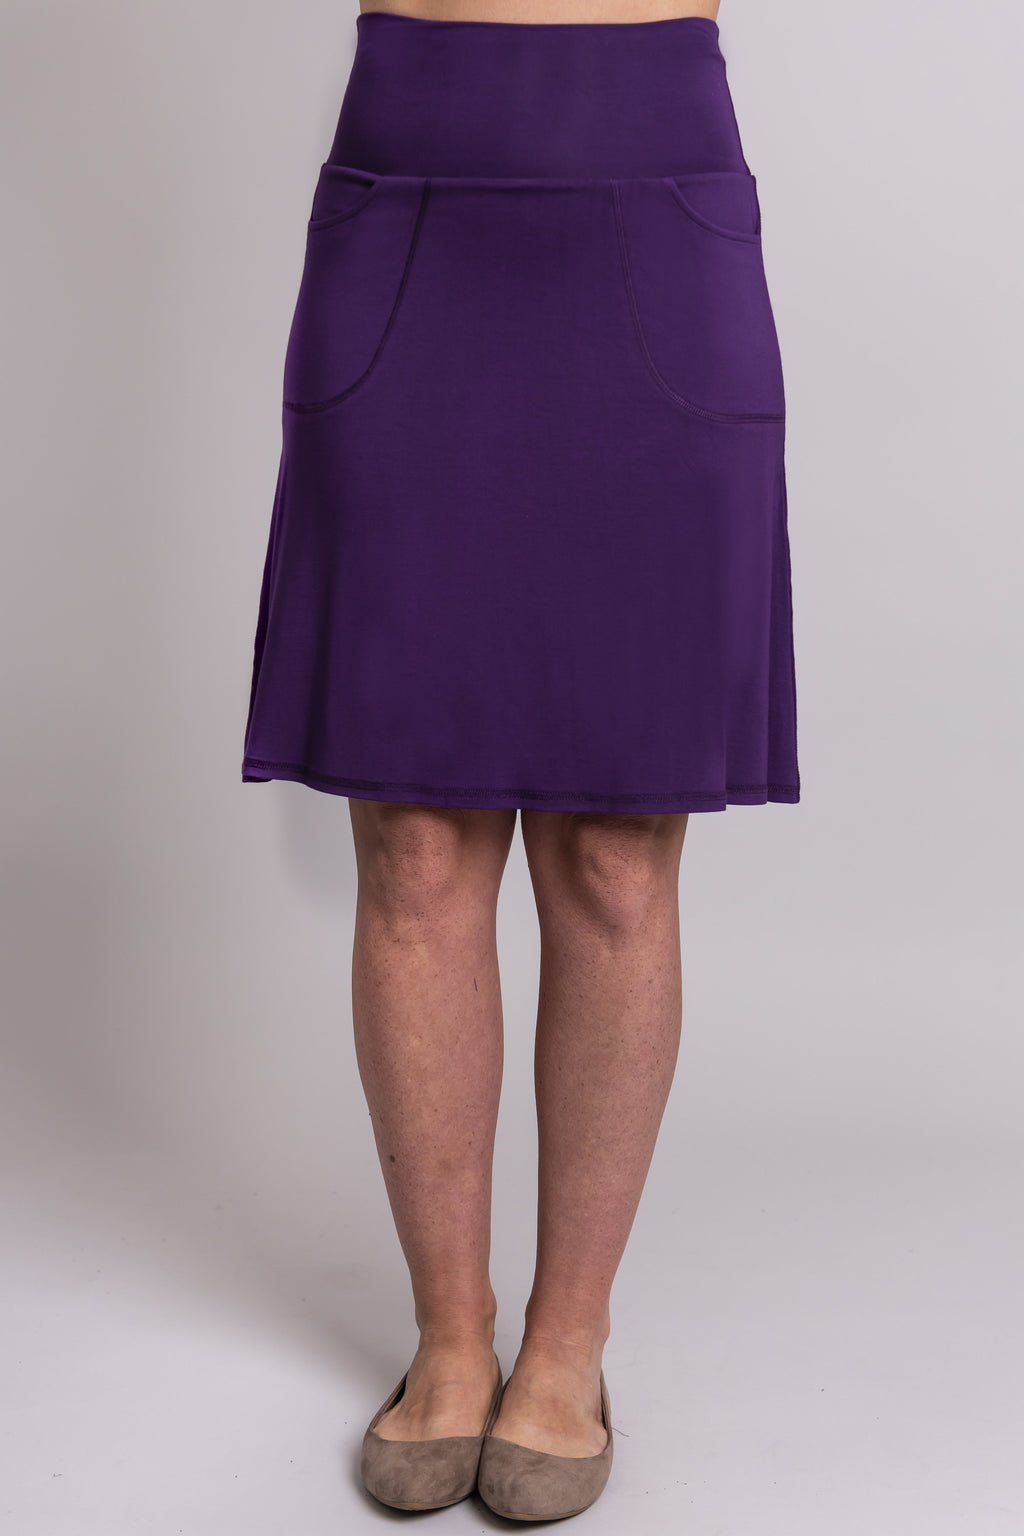 Magna Skort, Purple, Bamboo - Blue Sky Clothing Co